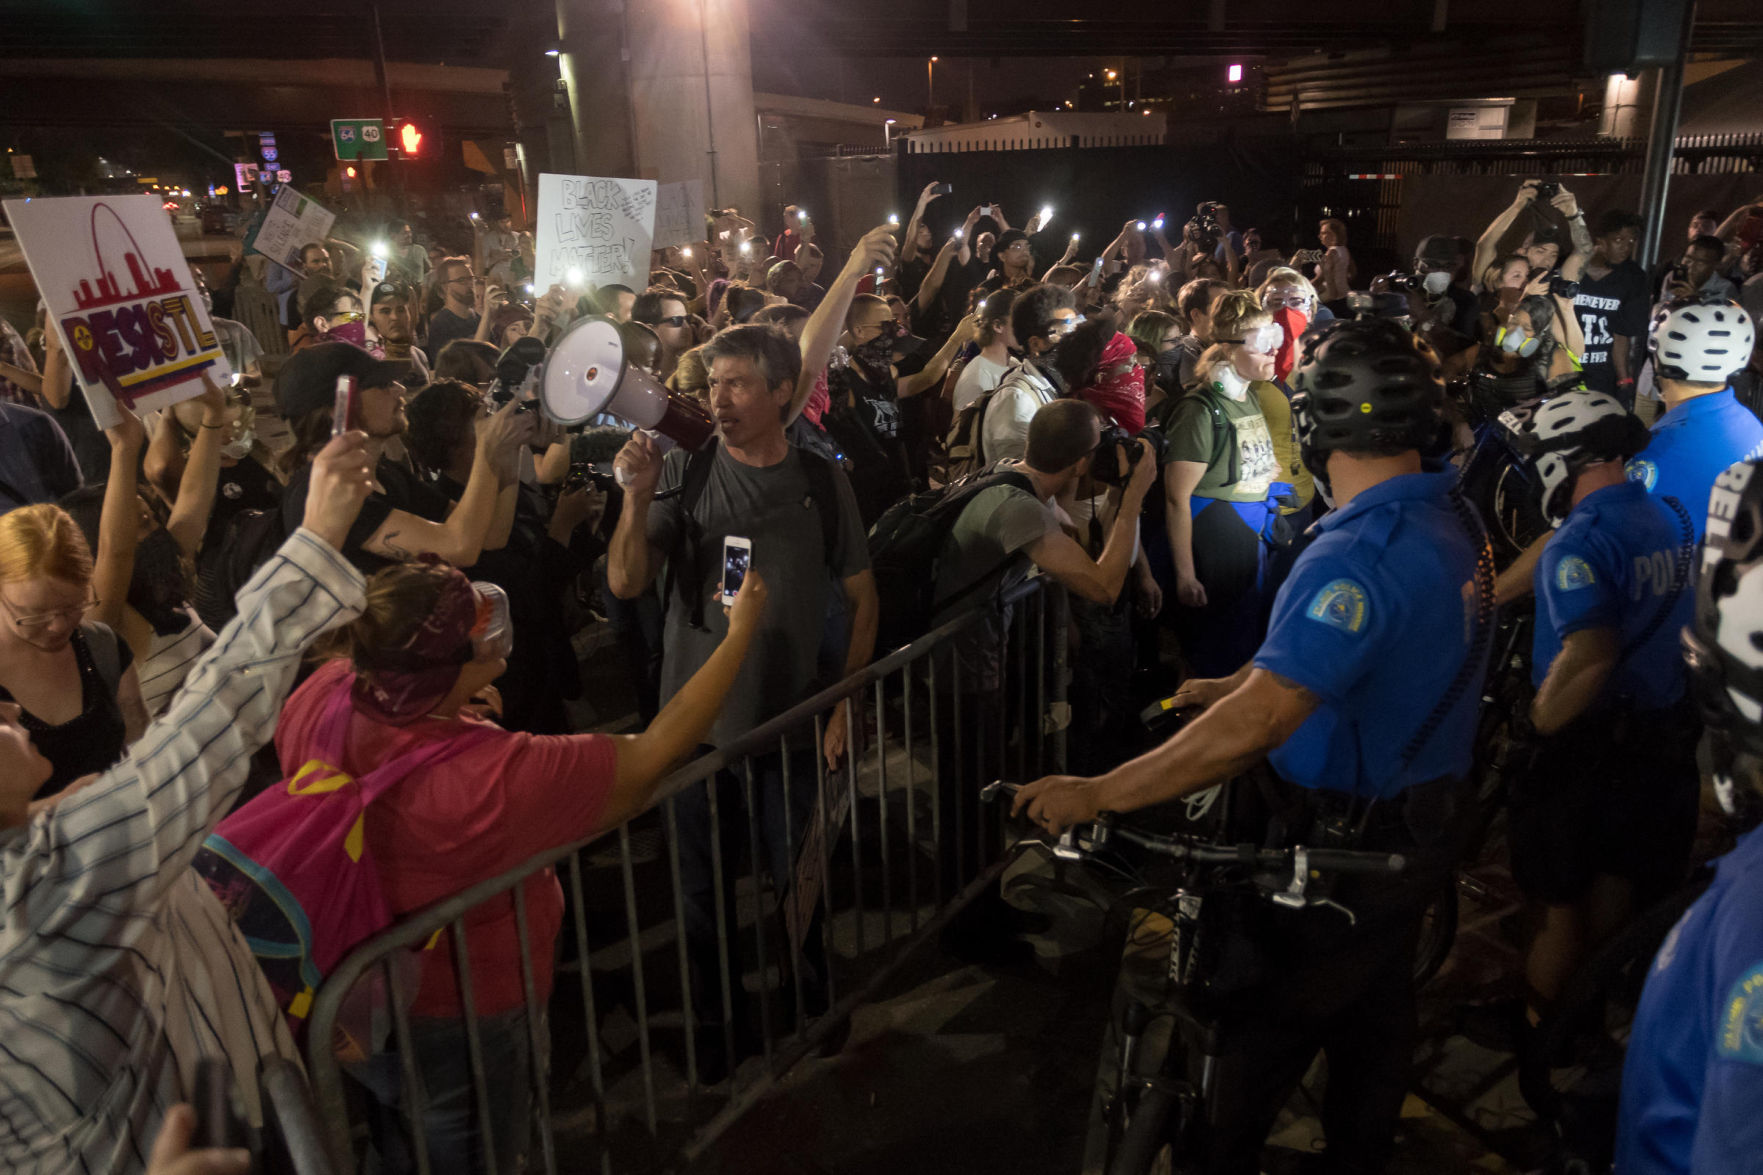 Protesters block traffic, march in streets of downtown St. Louis